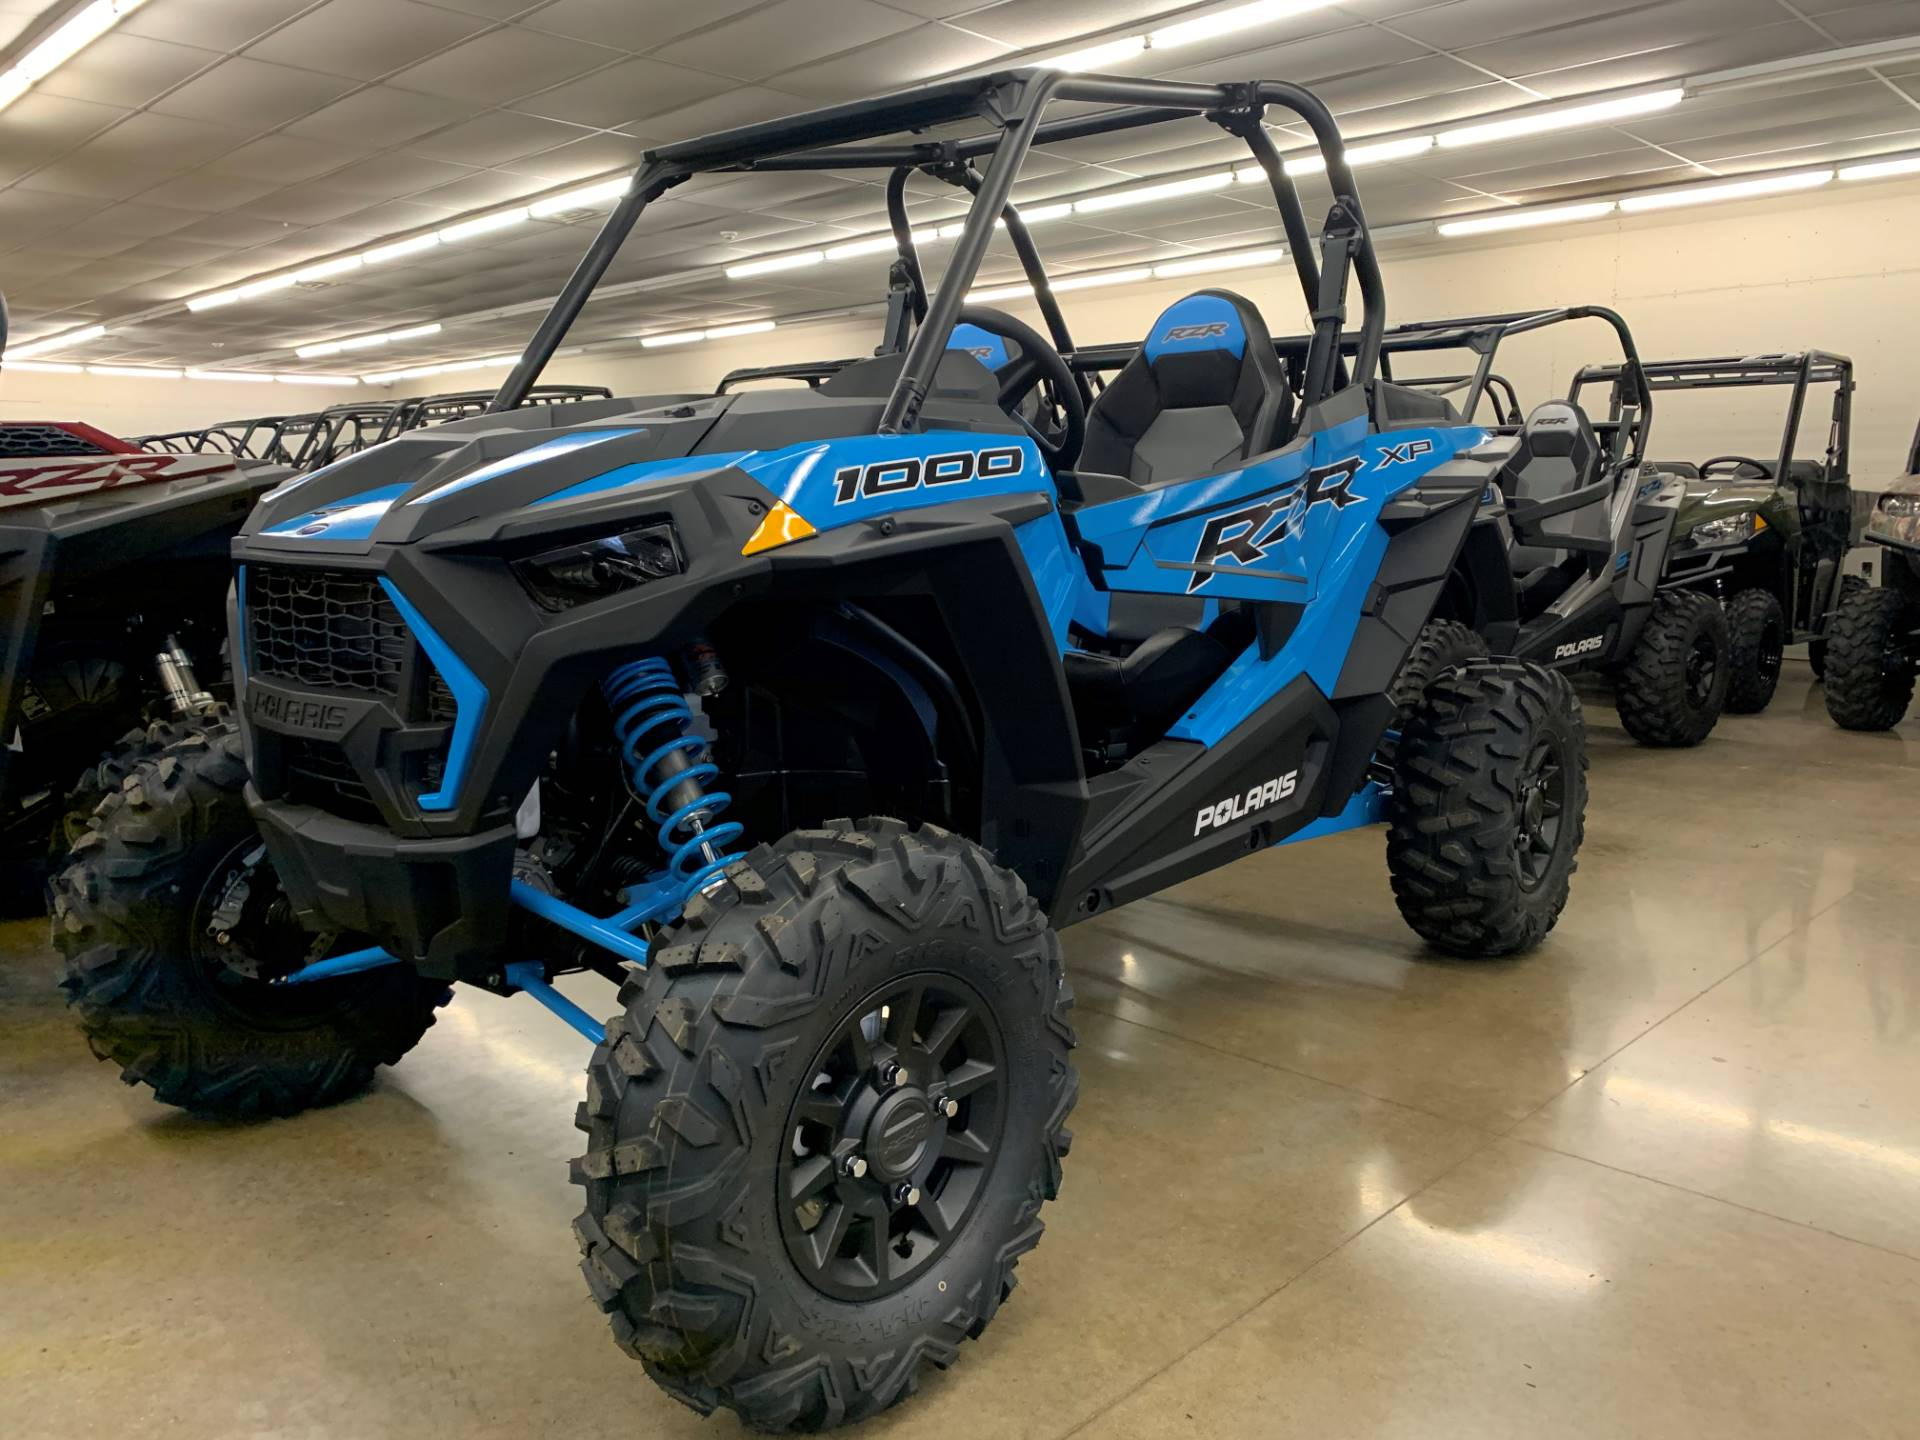 2020 Polaris RZR XP 1000 in Coraopolis, Pennsylvania - Photo 5